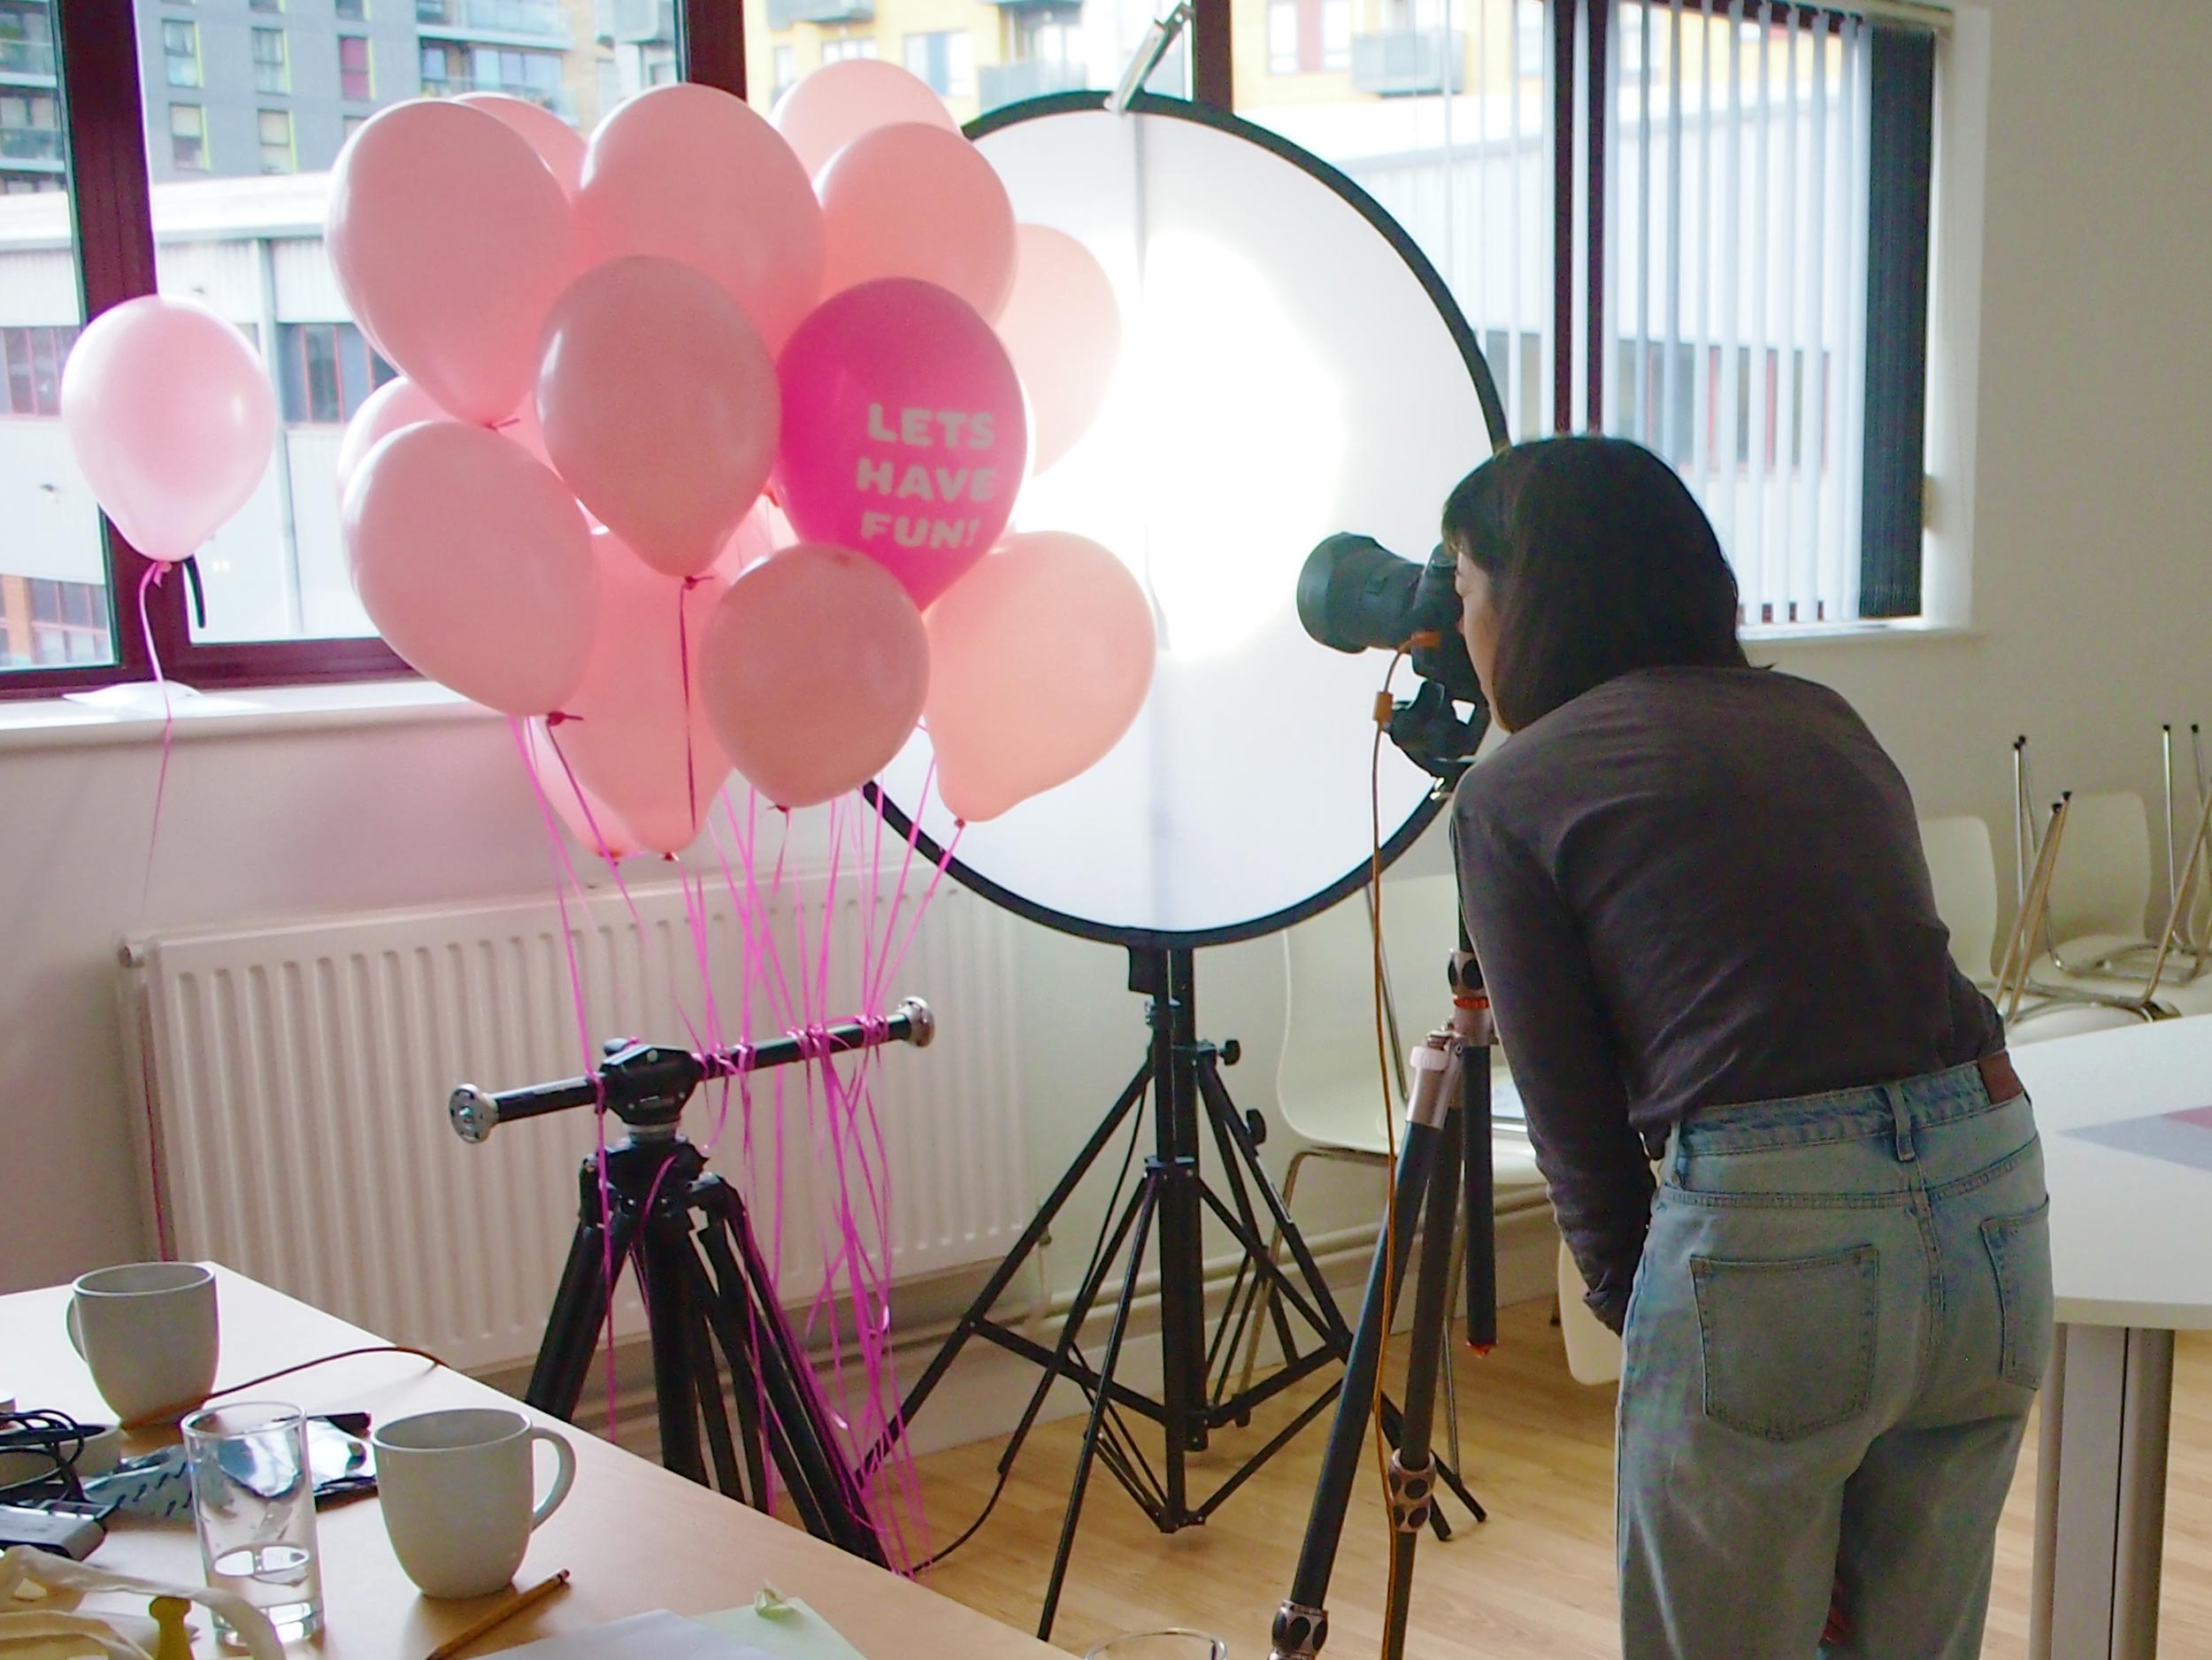 A photographer shoots pink balloons against the light of a window.